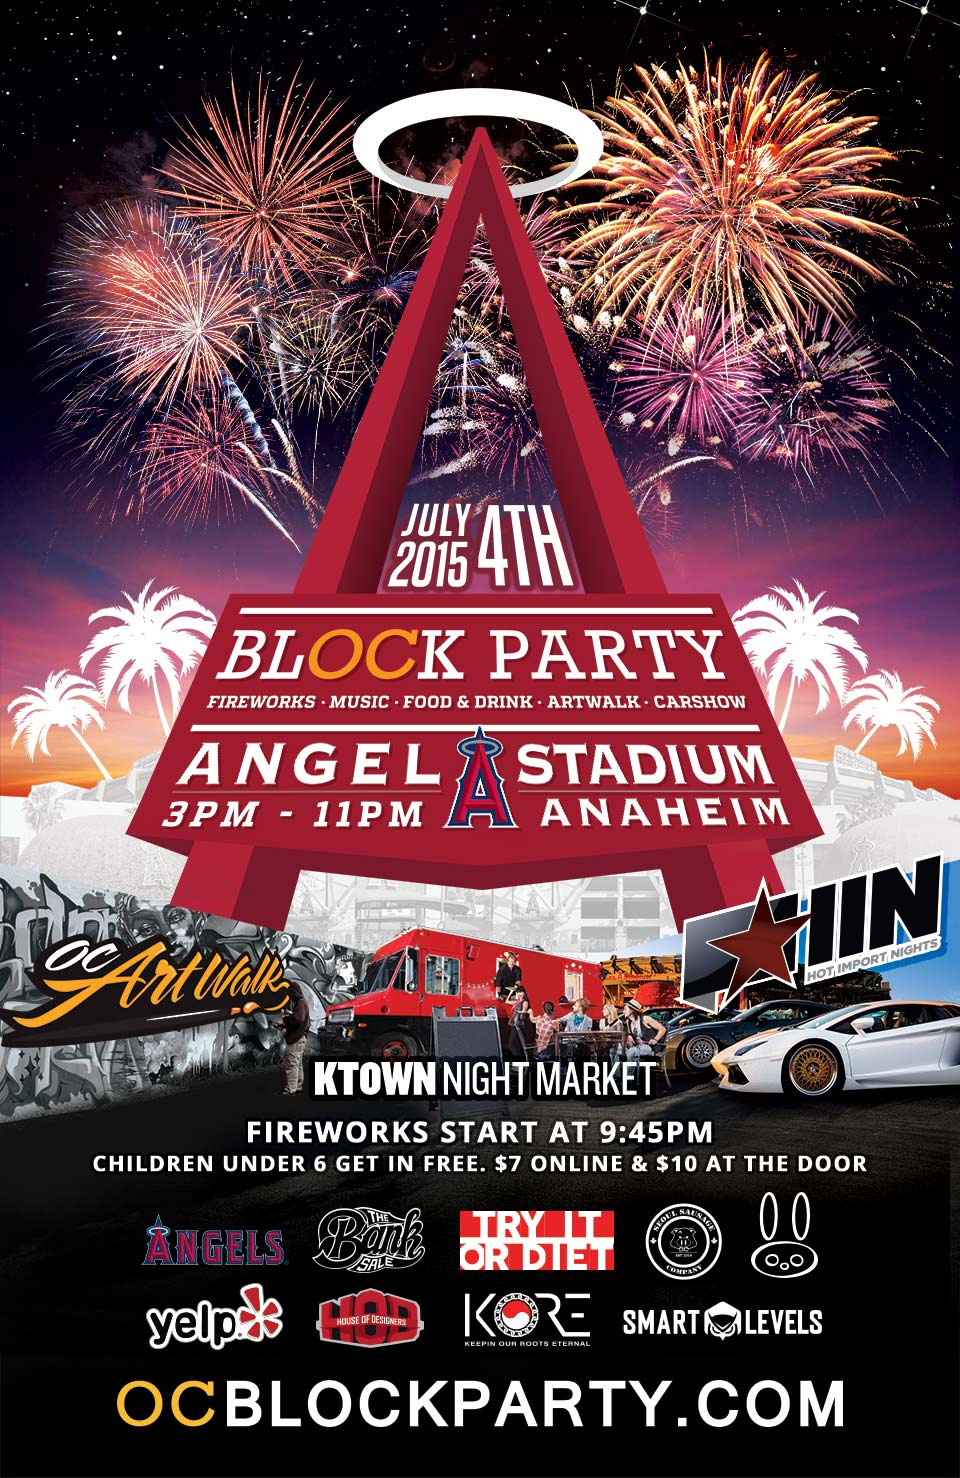 OCBLOCKPARTY is coming on July 4th, 2015 at the Angel Stadium